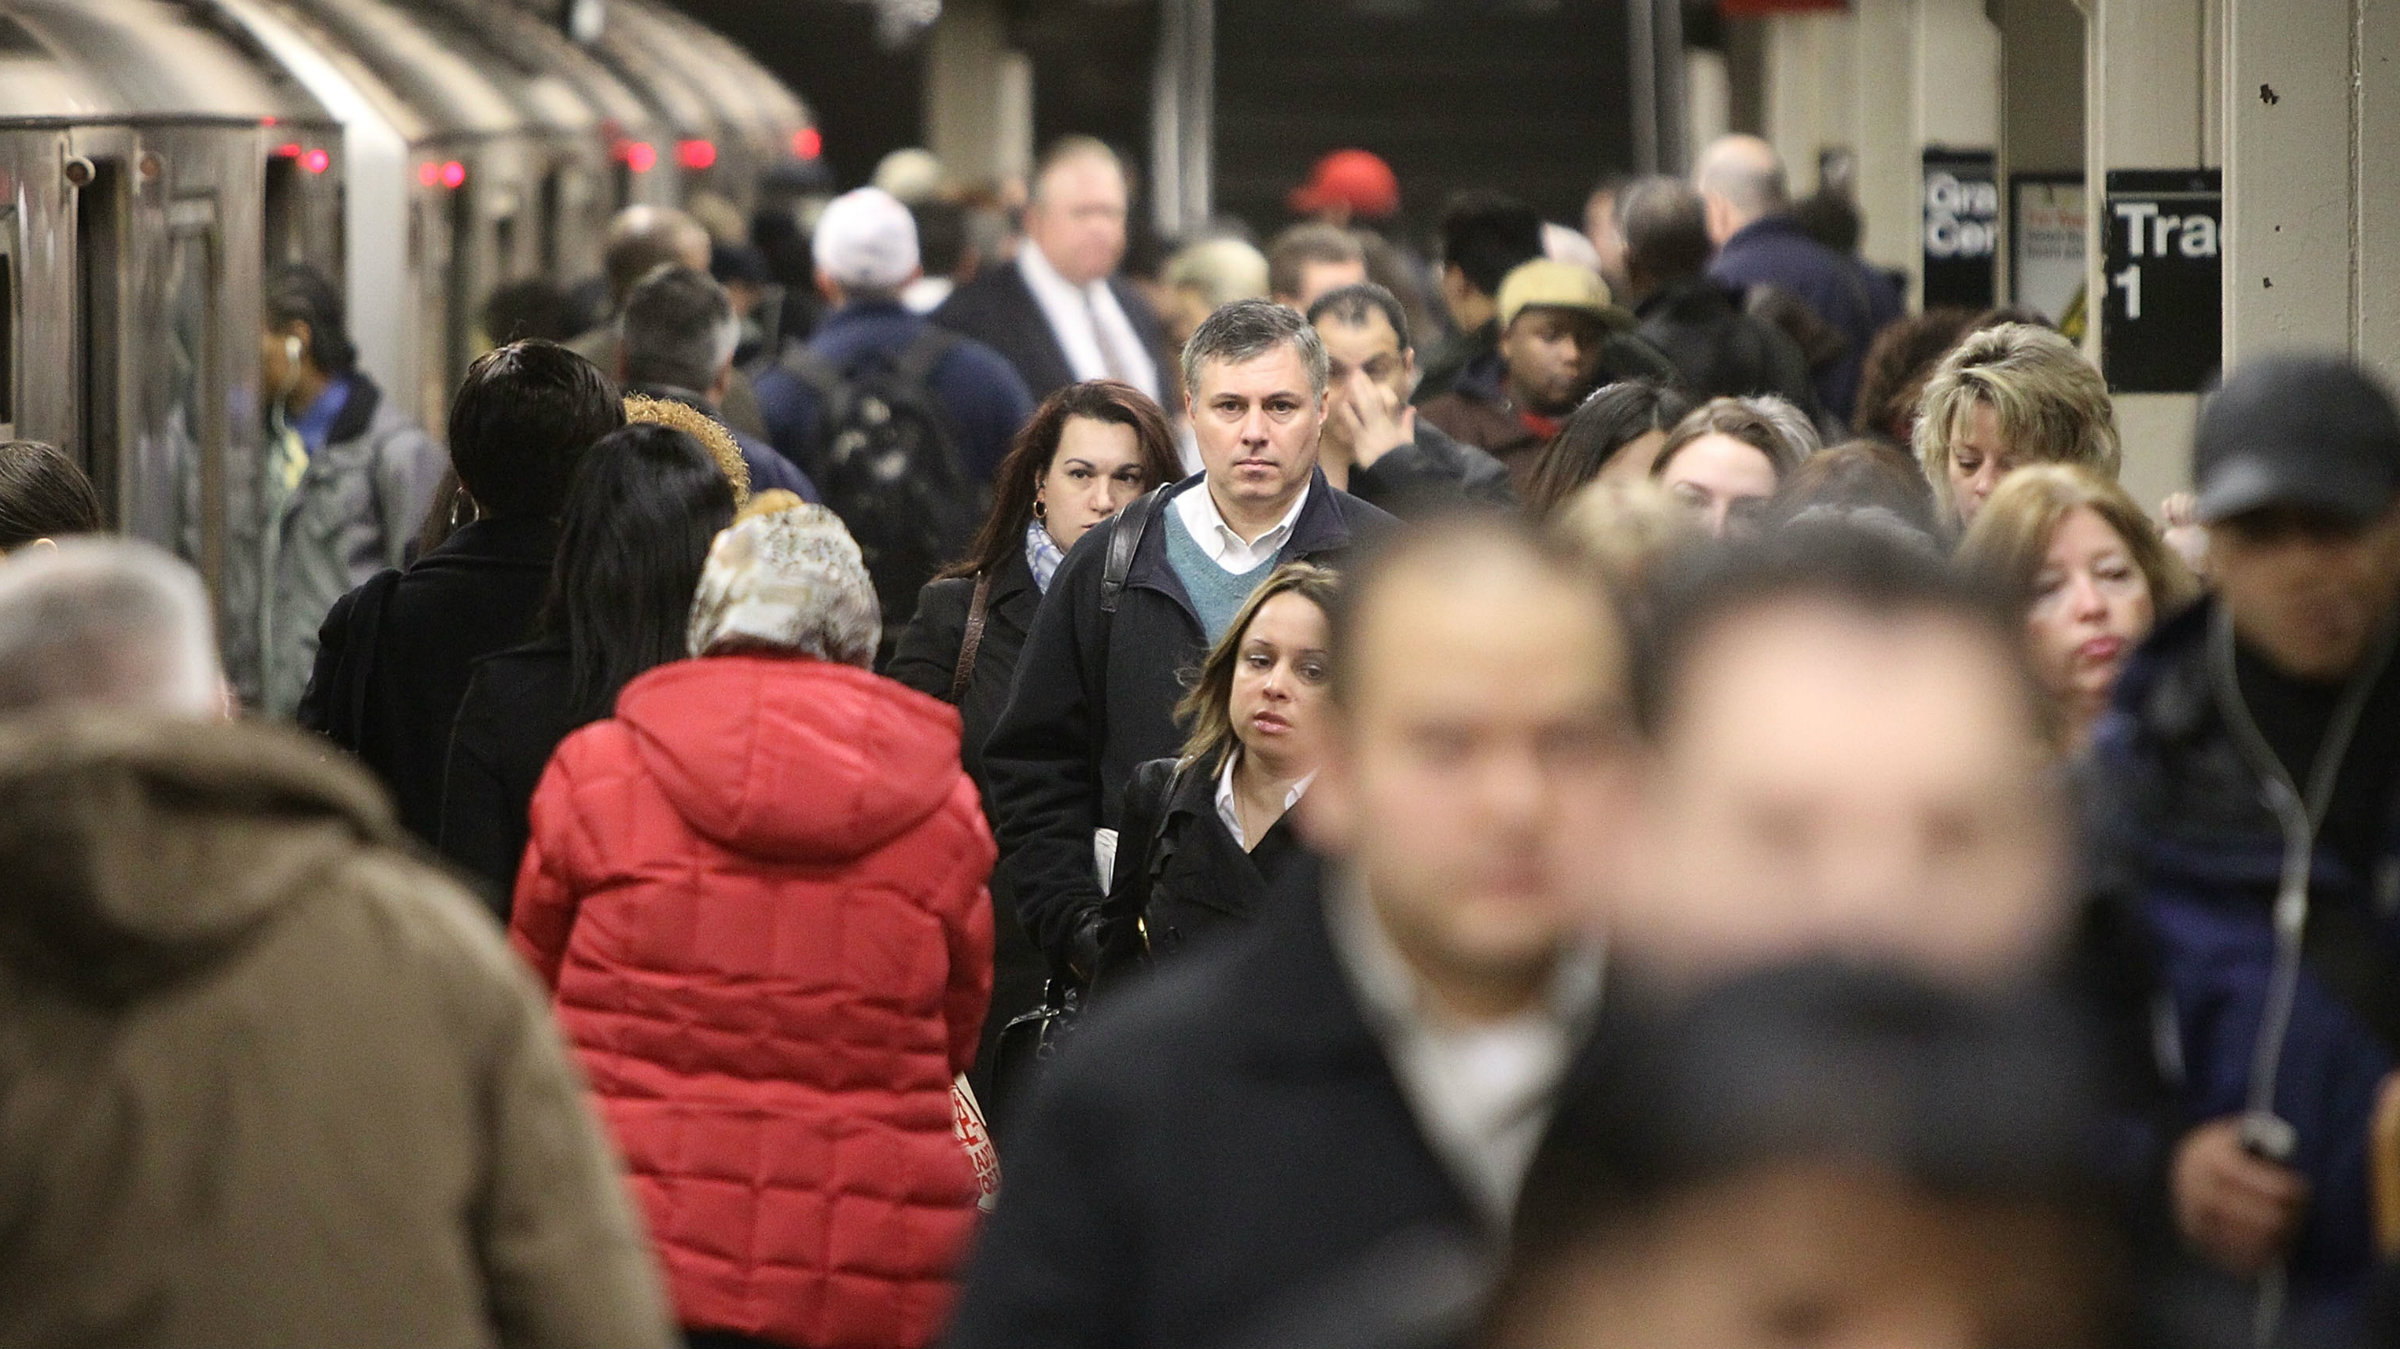 More than two million people take the subway to get to work every day in New York City.